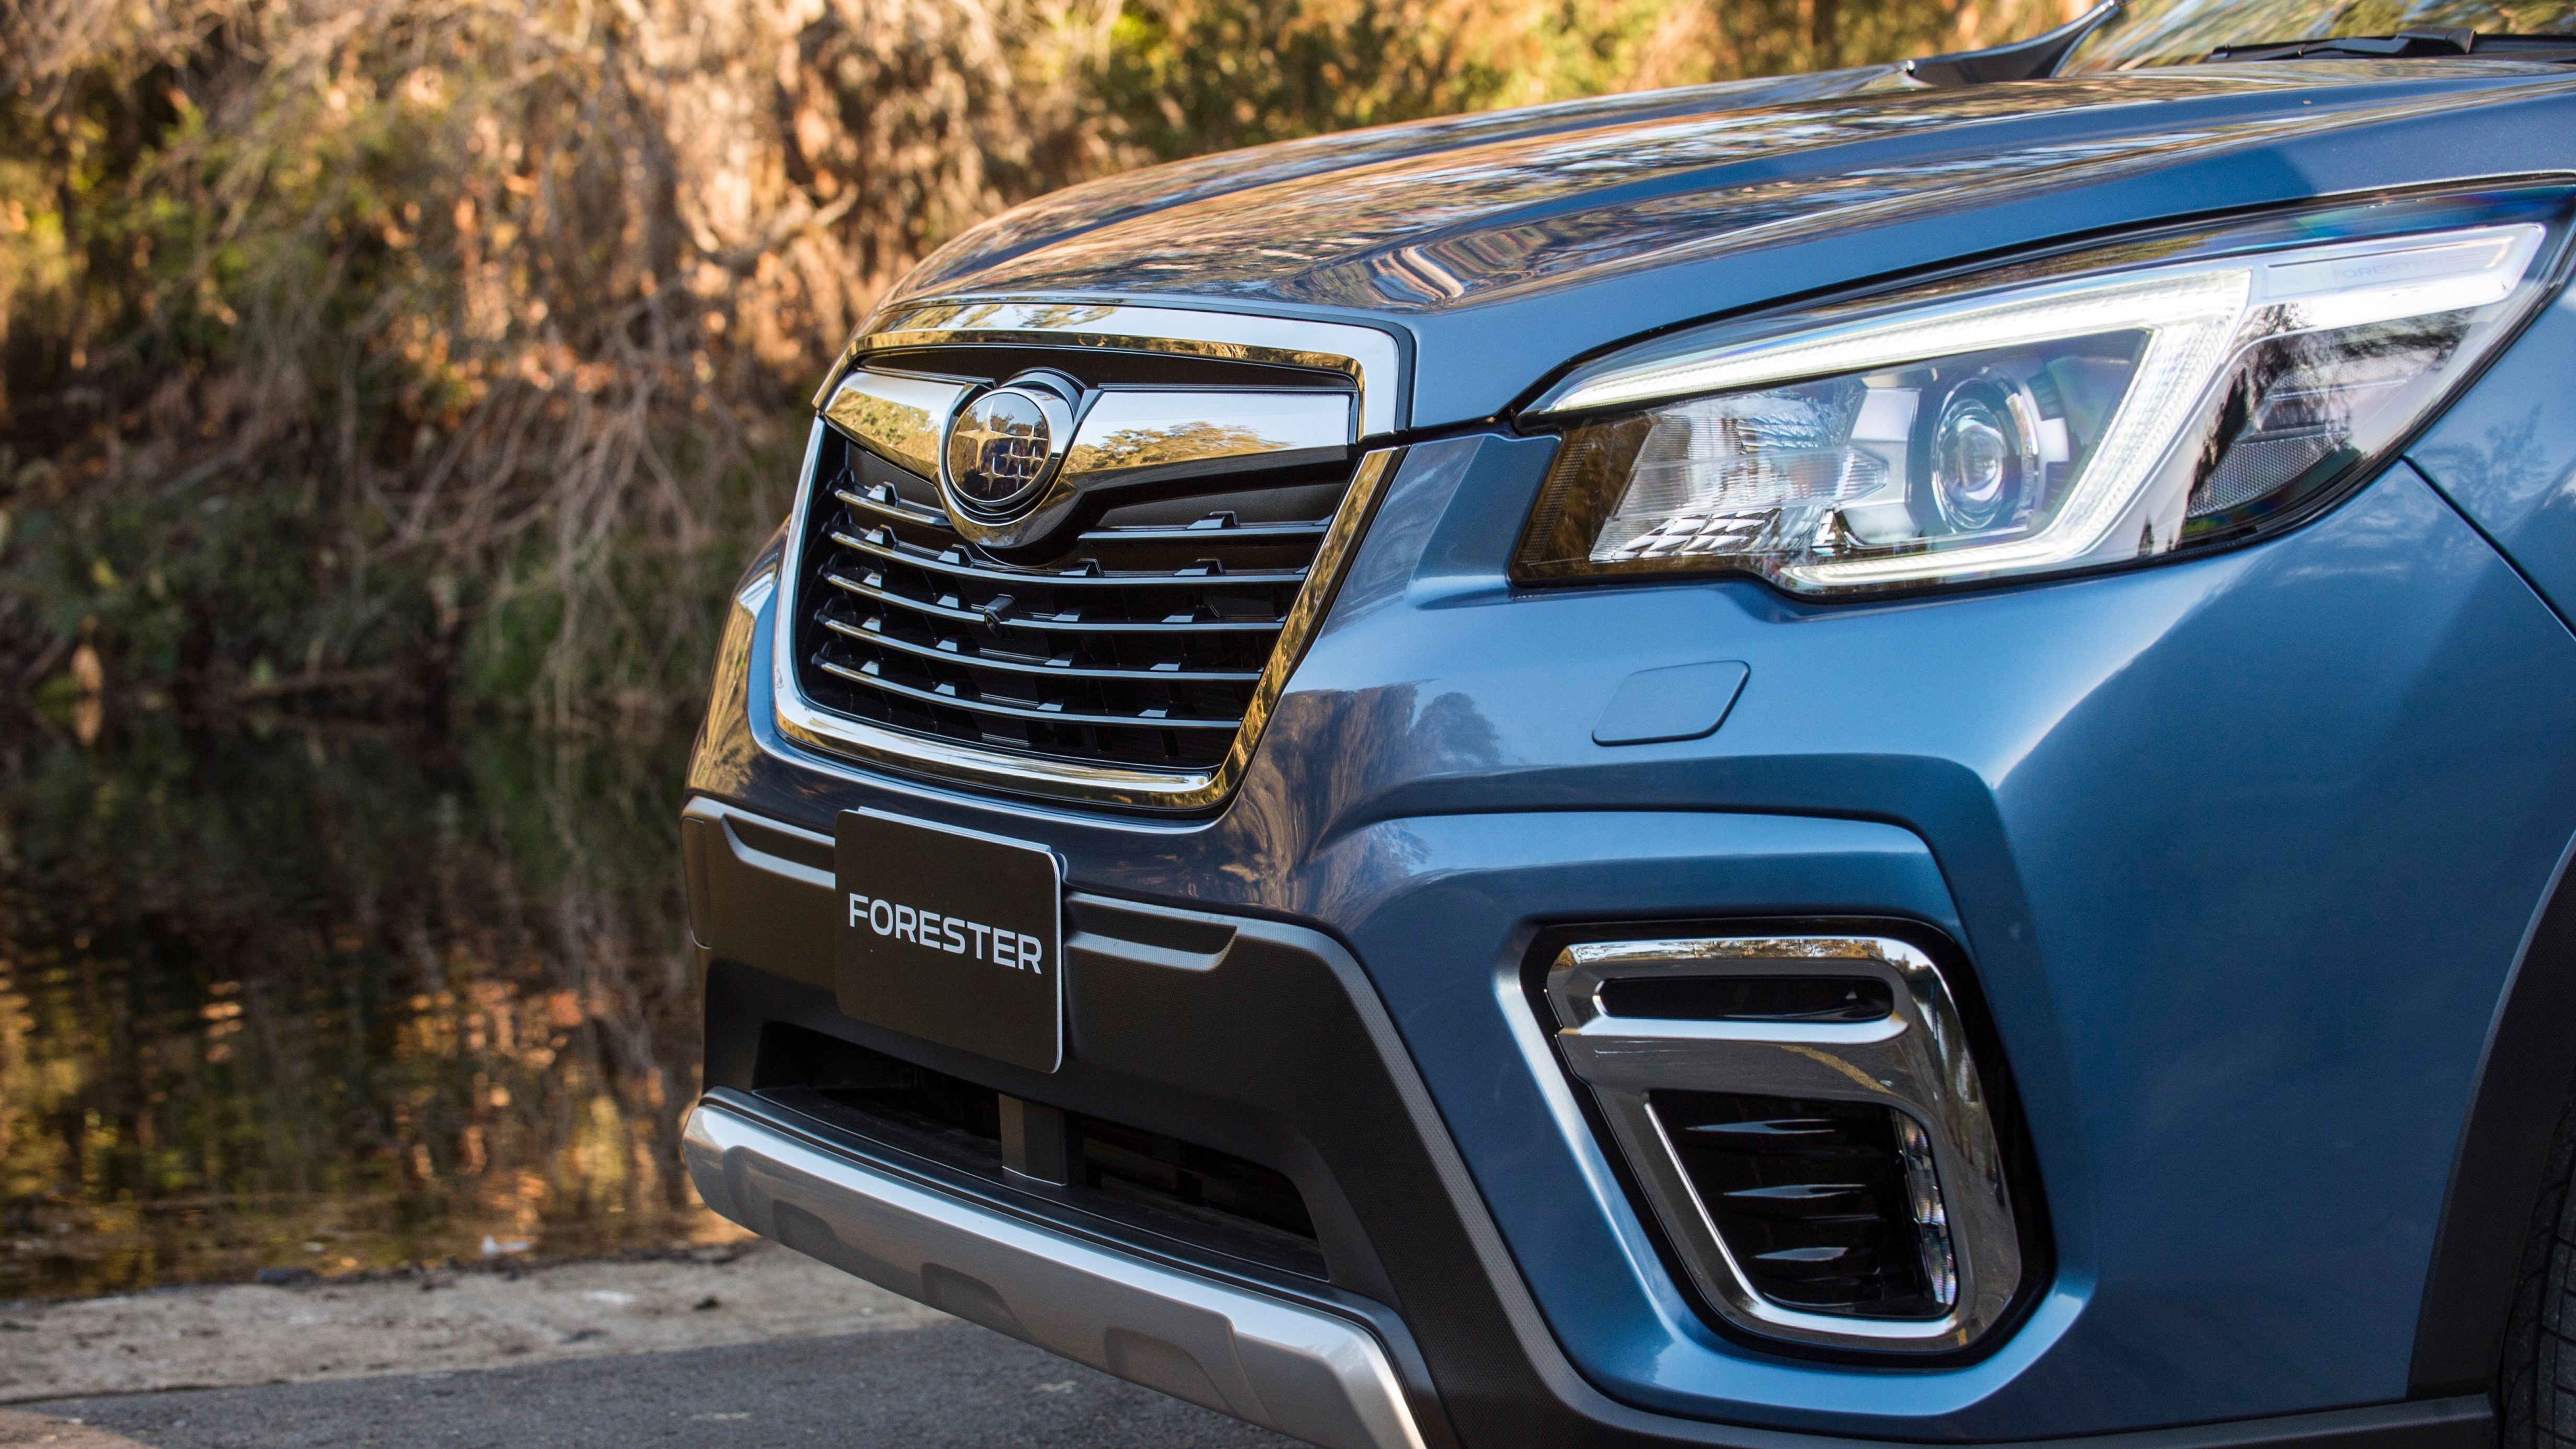 2019 Subaru Forester 2.5i-S blue front detail